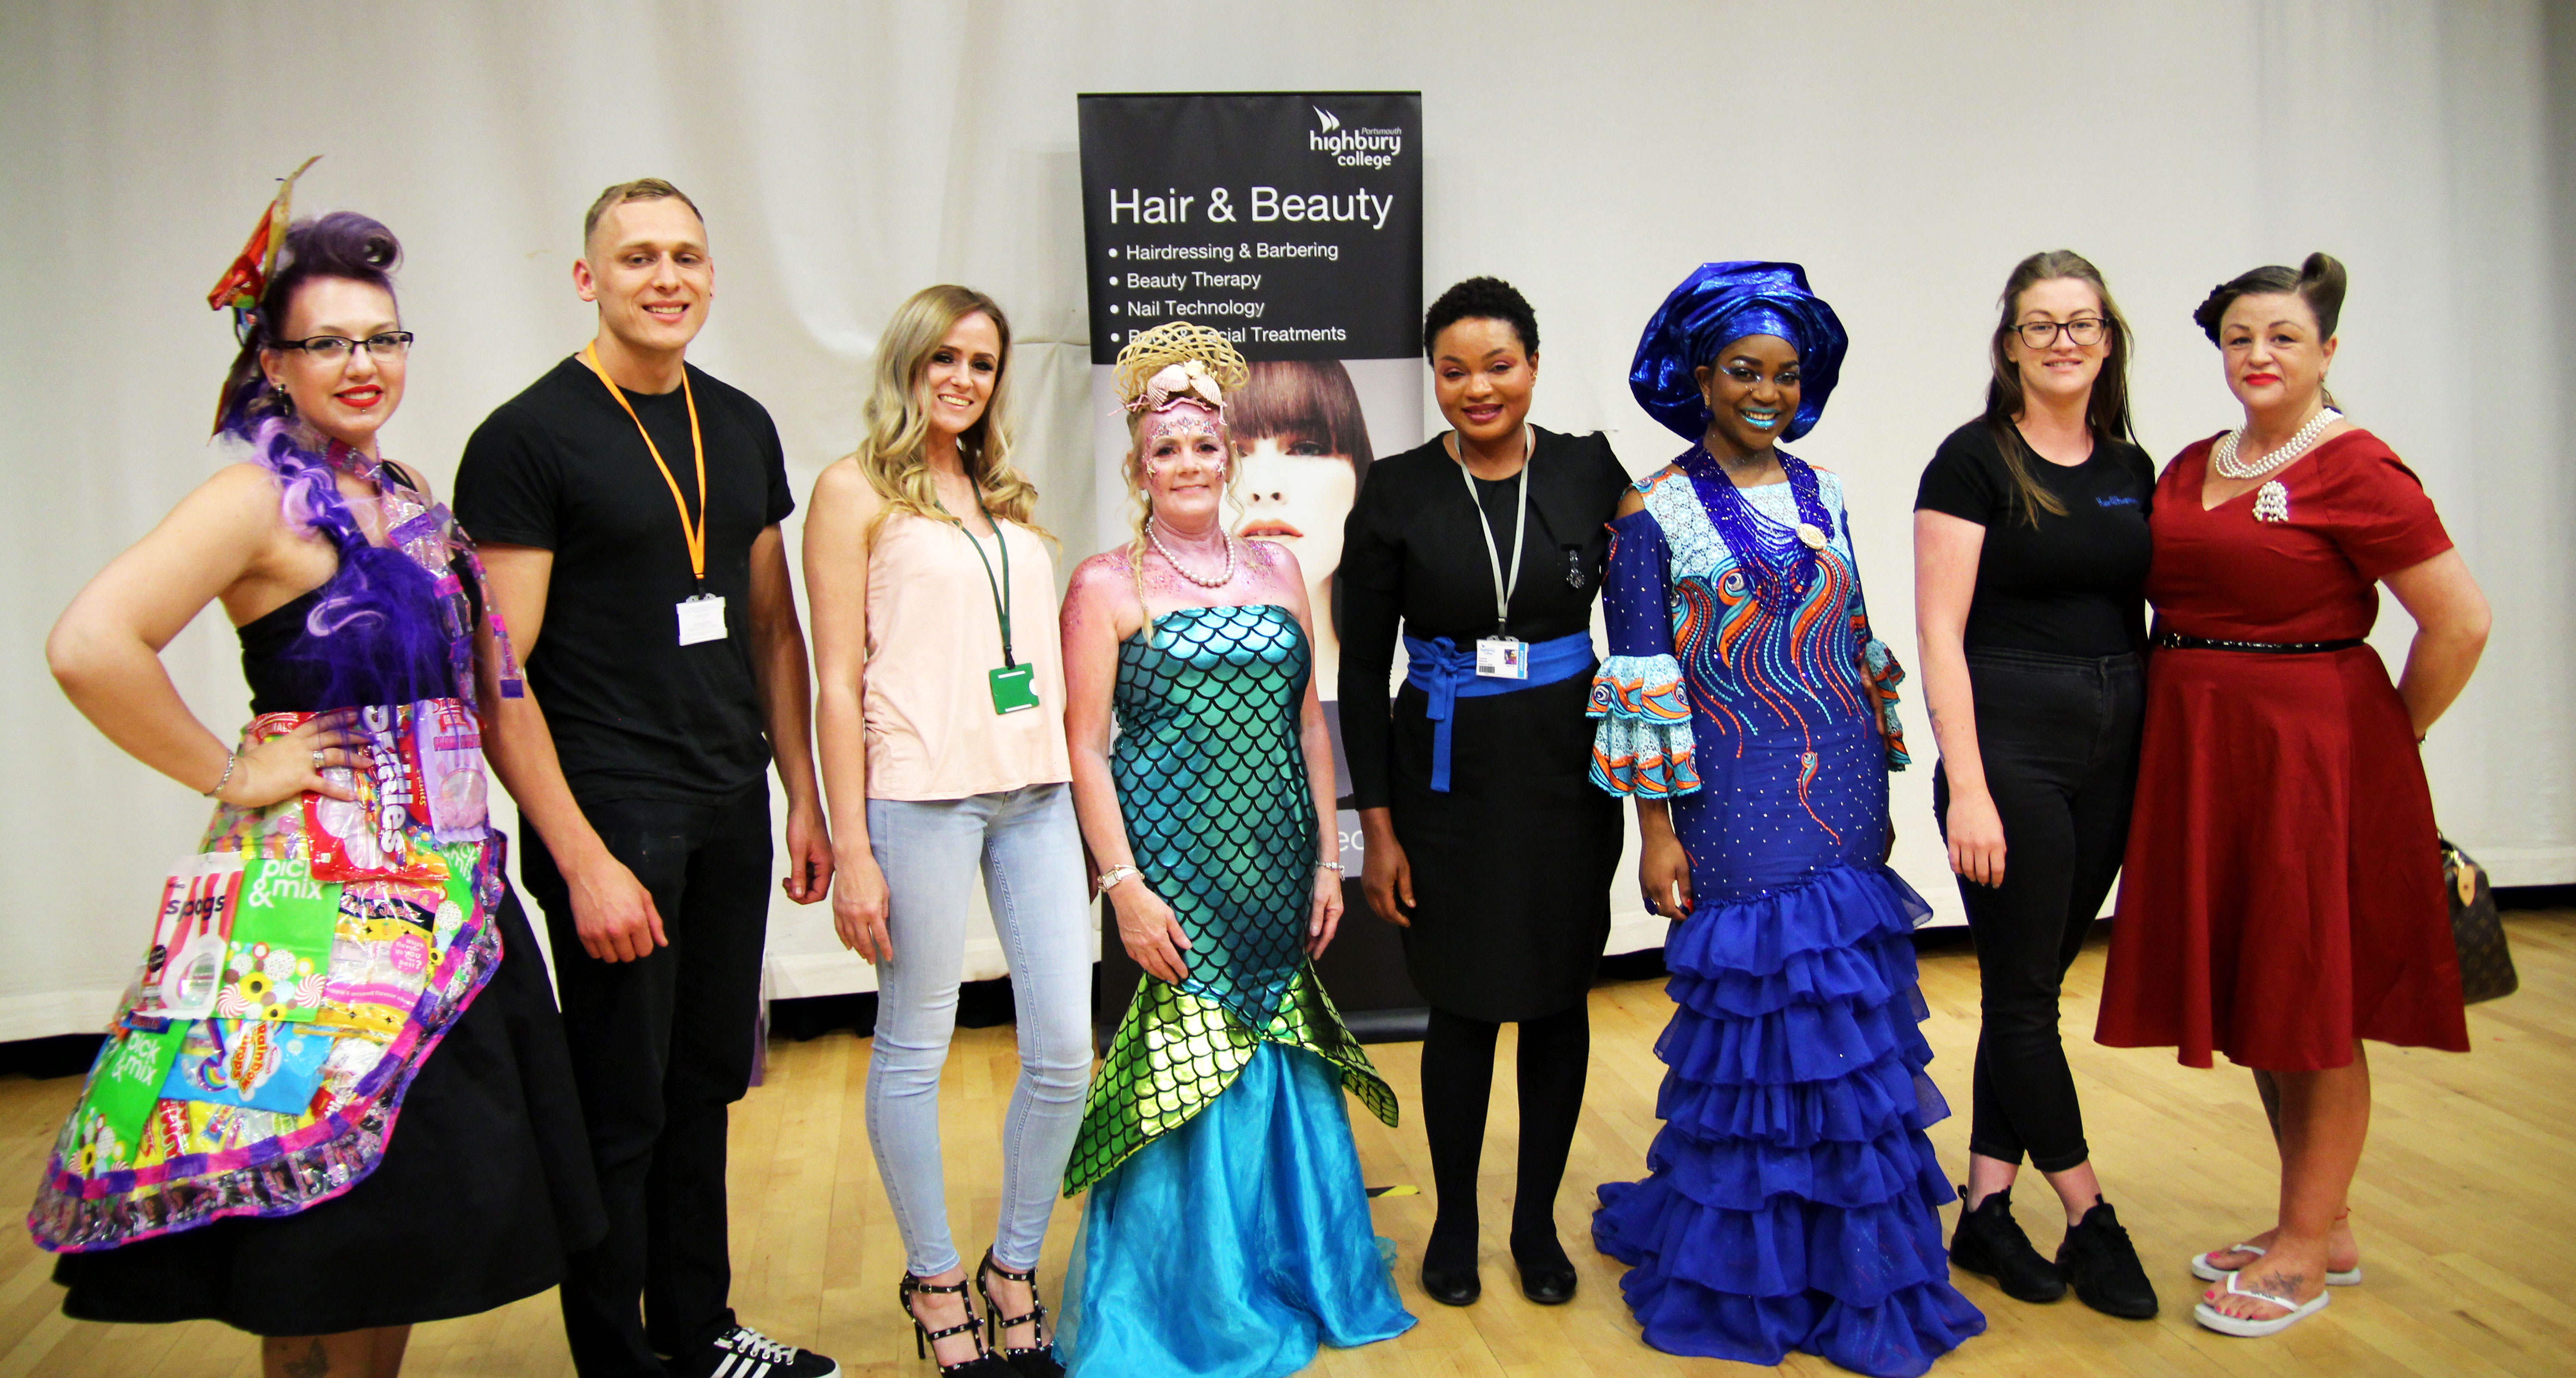 The winners with their models at the Hairdressing and Beauty Therapy Finals